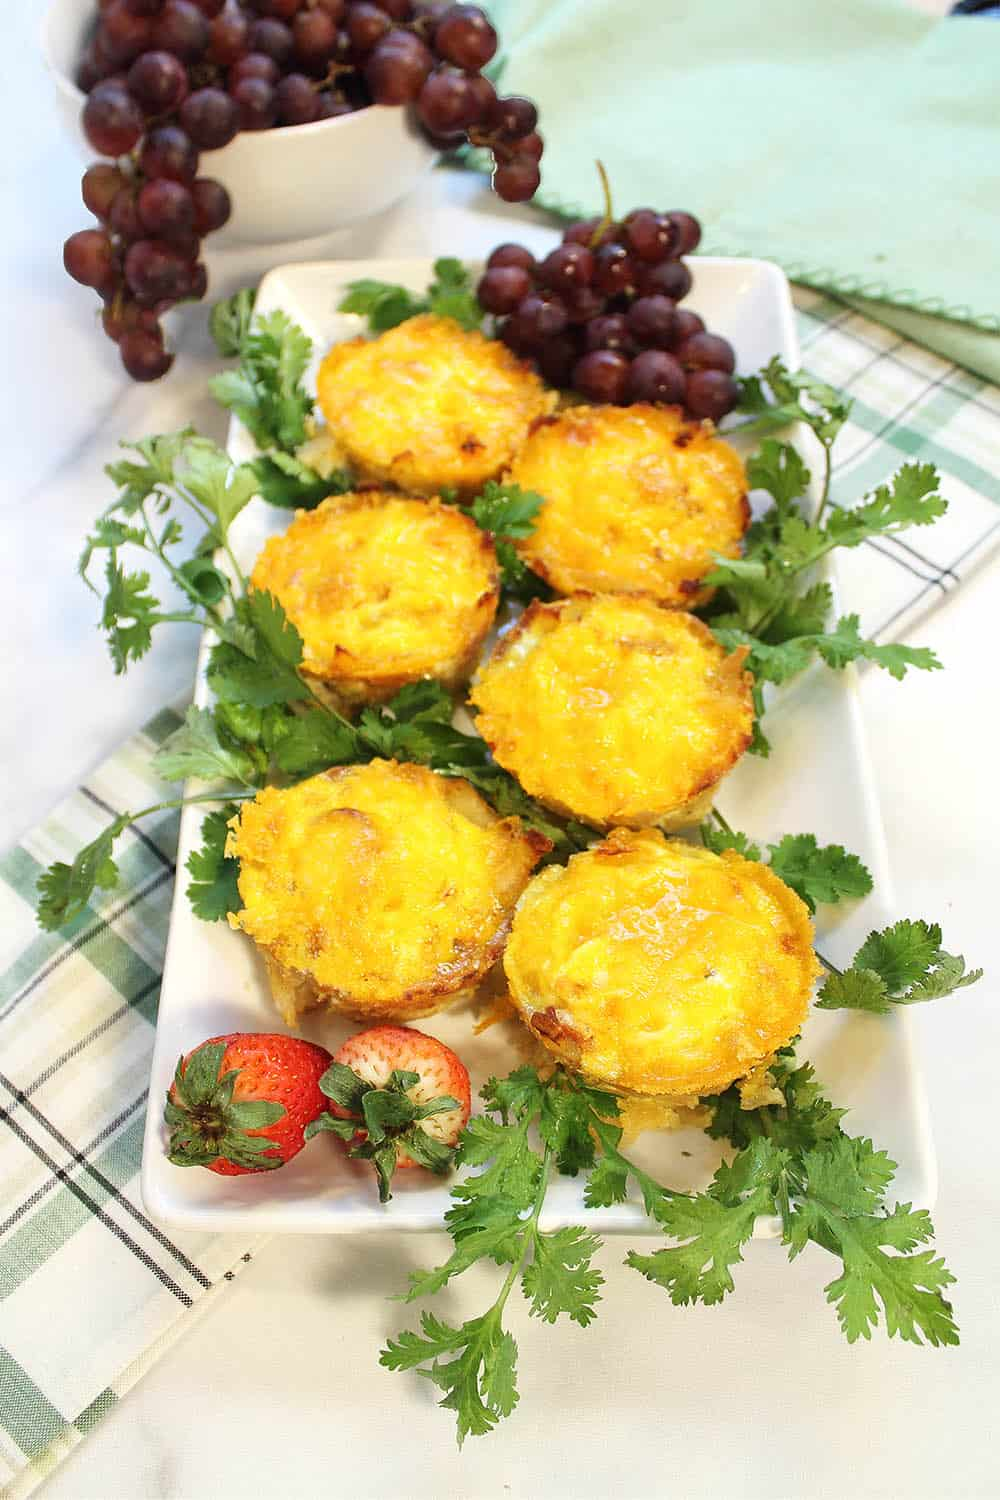 Egg muffins plated on green plaid napkin with grapes in background.